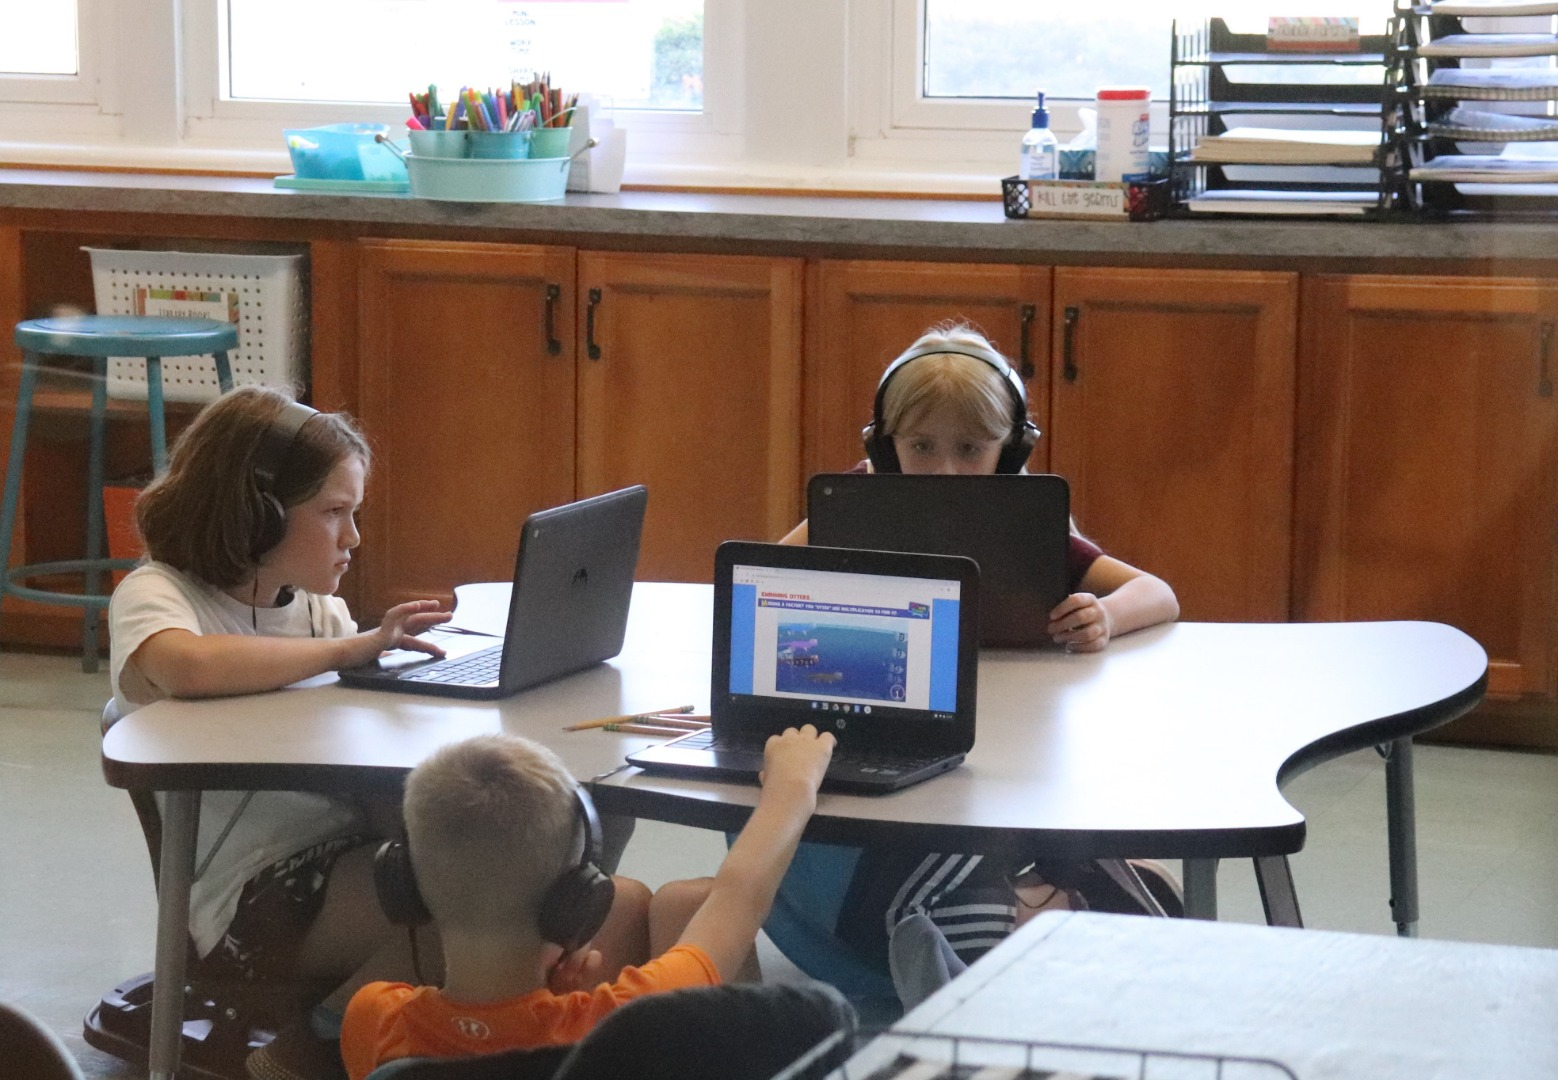 Three students working with individual laptops